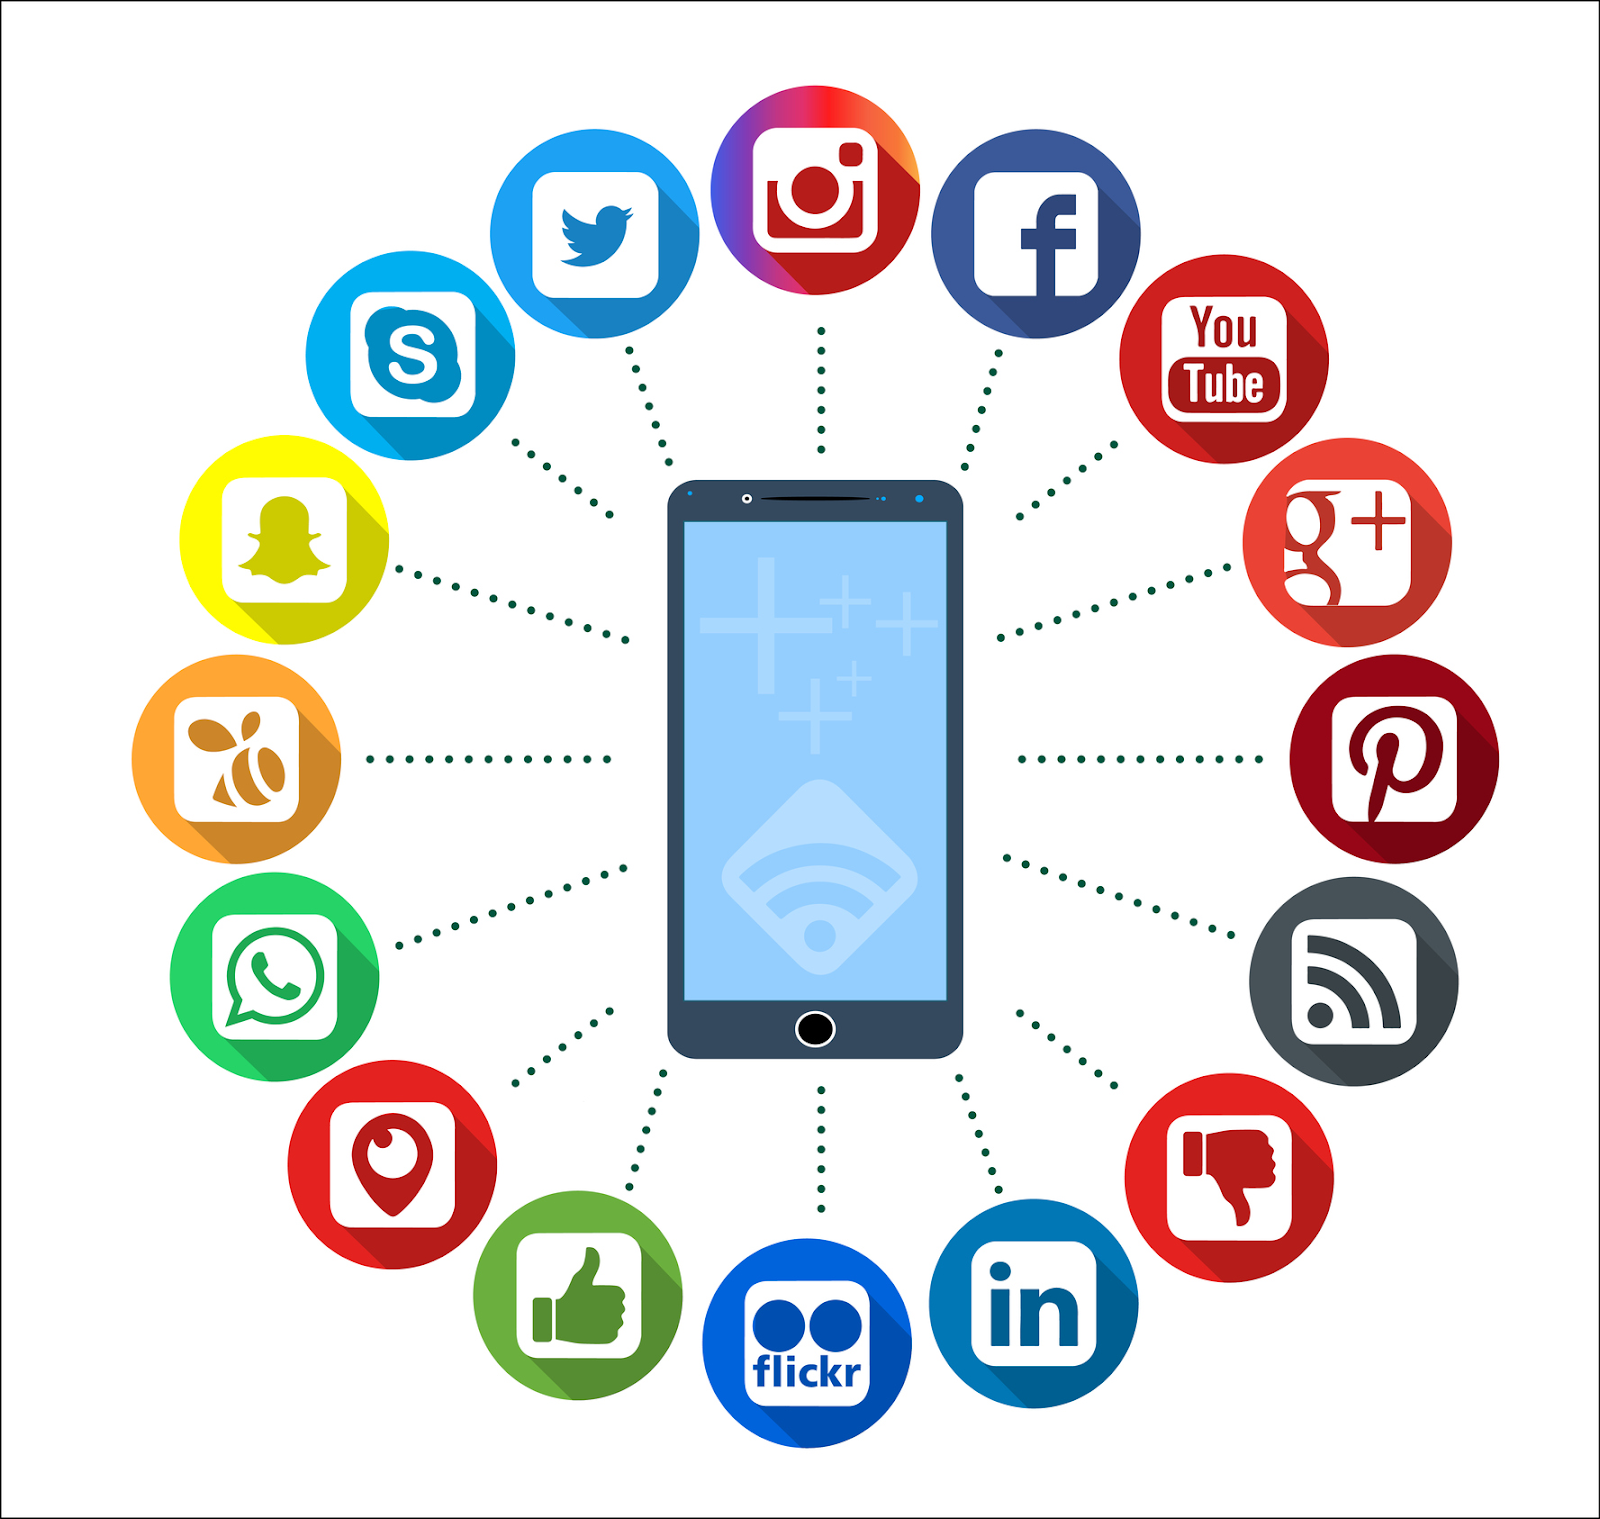 Phone surrounded by 16 social media icons